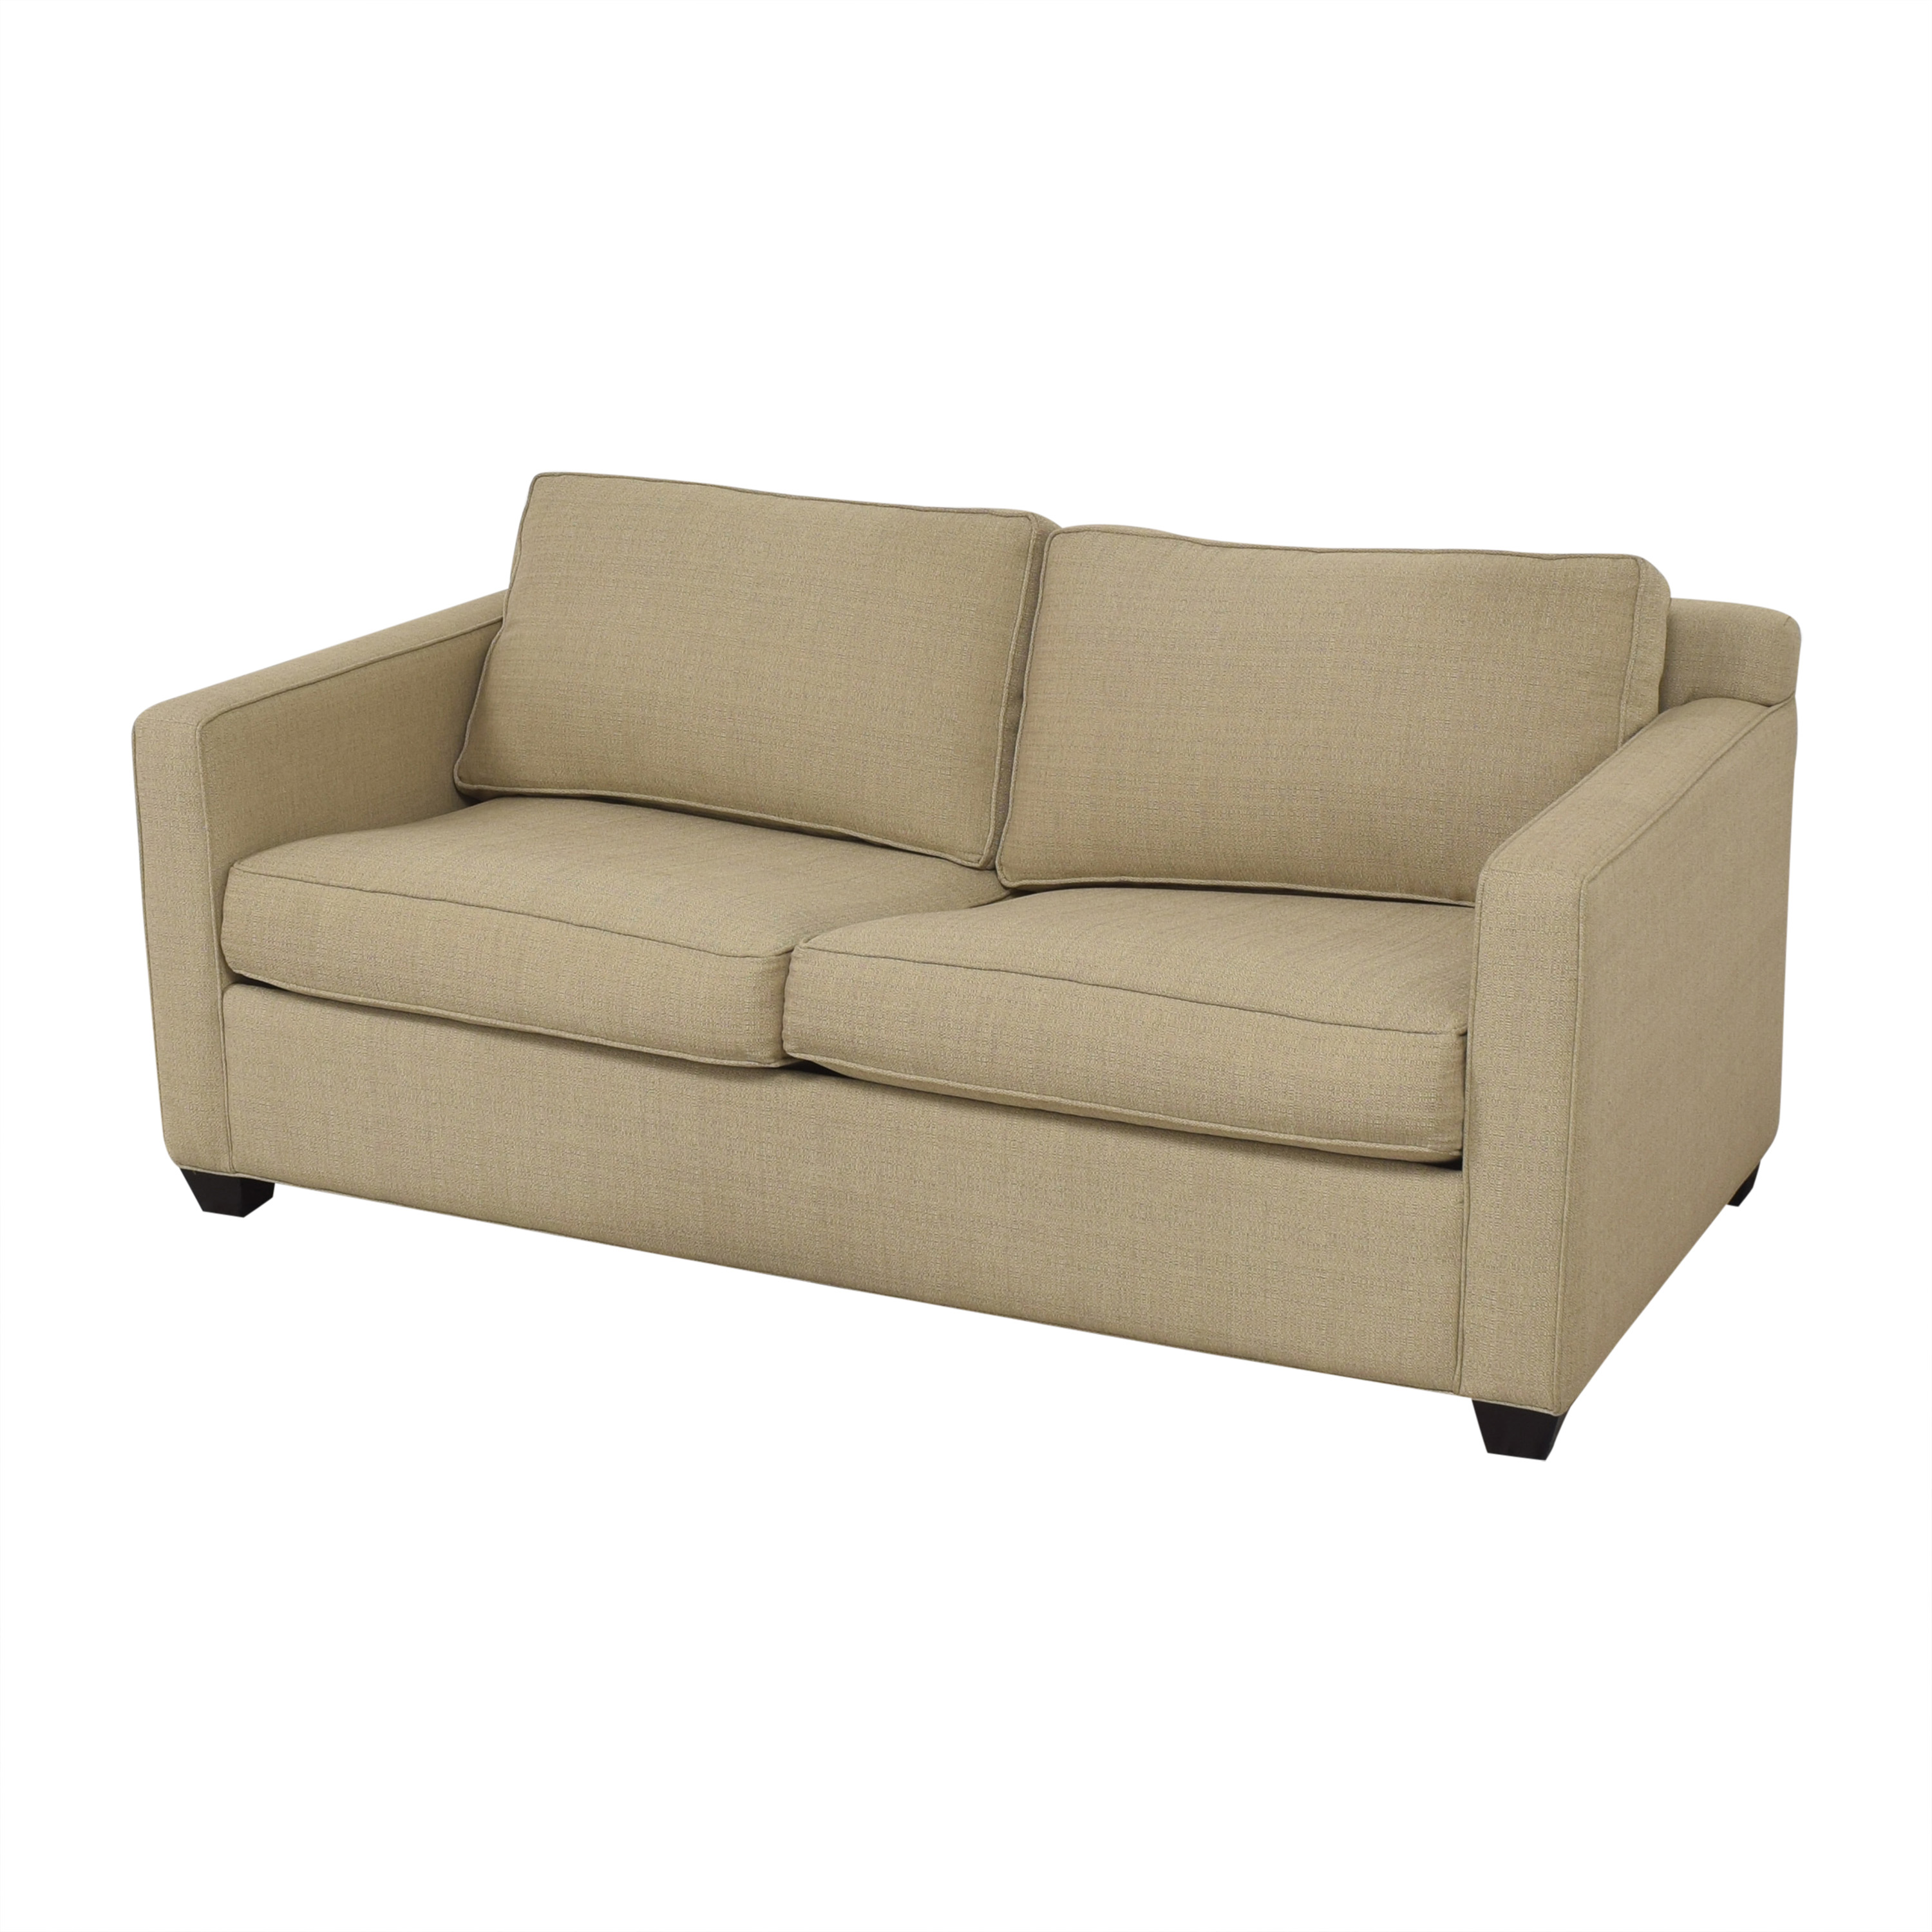 buy Younger Furniture Two Cushion Sleeper Sofa Younger Furniture Sofas